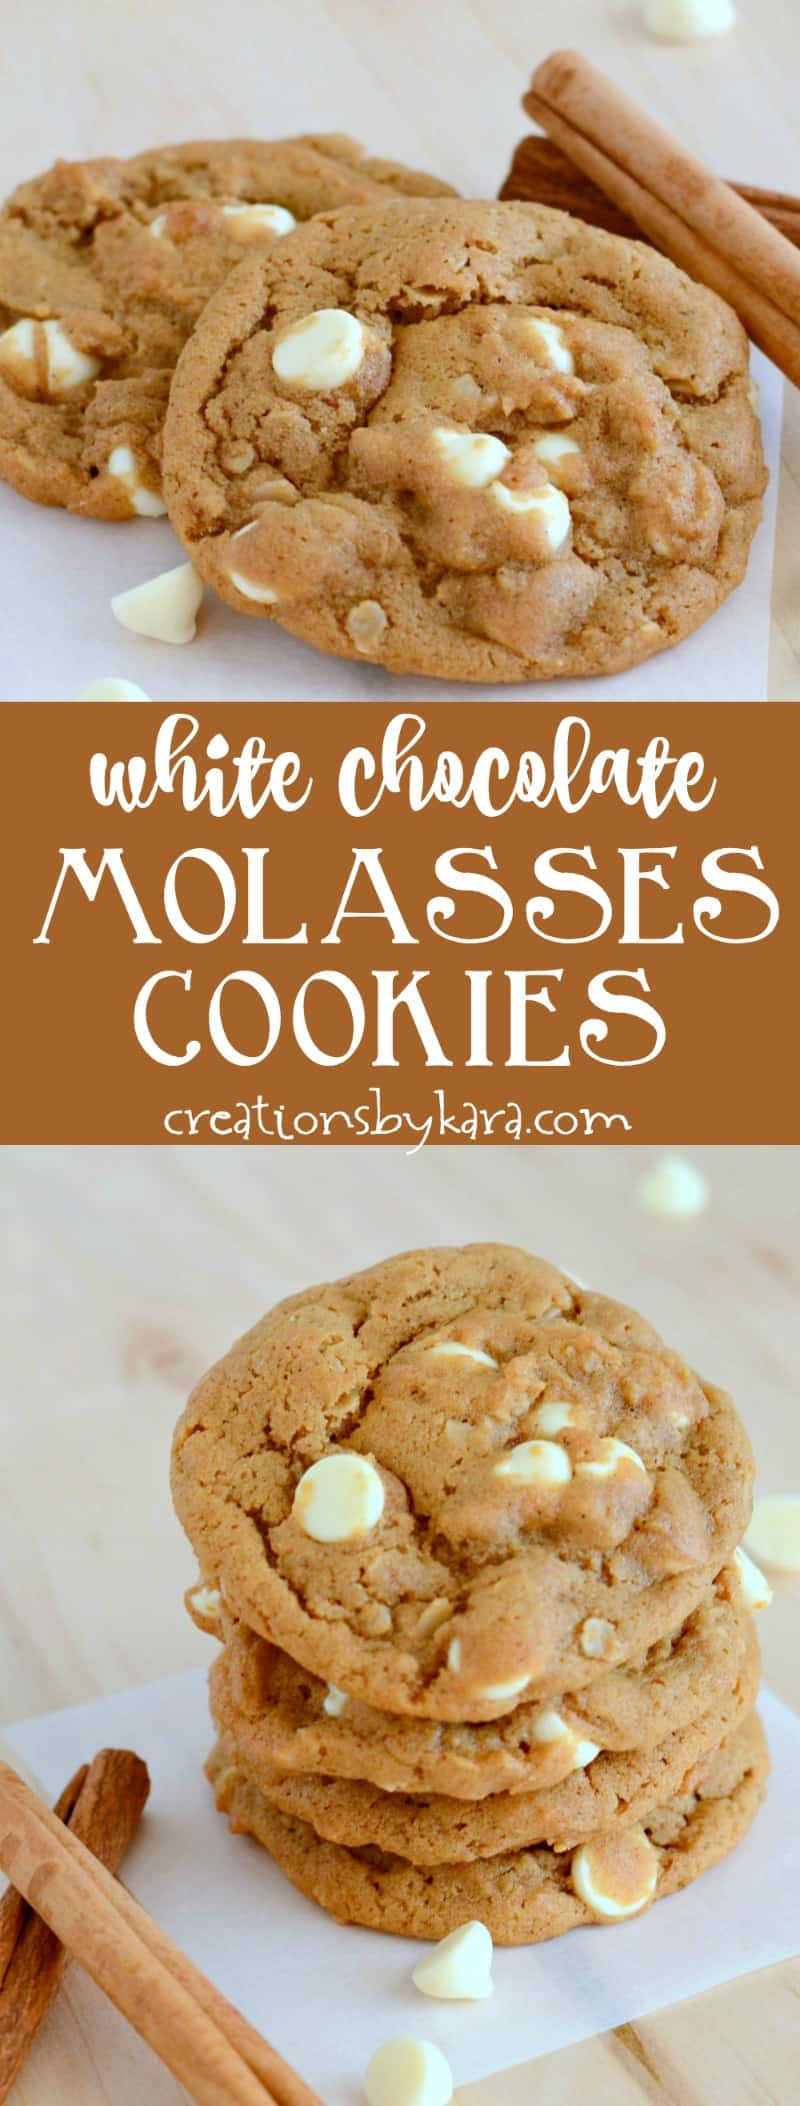 Soft and chewy, these Molasses Cookies have the perfect amount of spice. A yummy holiday cookie recipe!